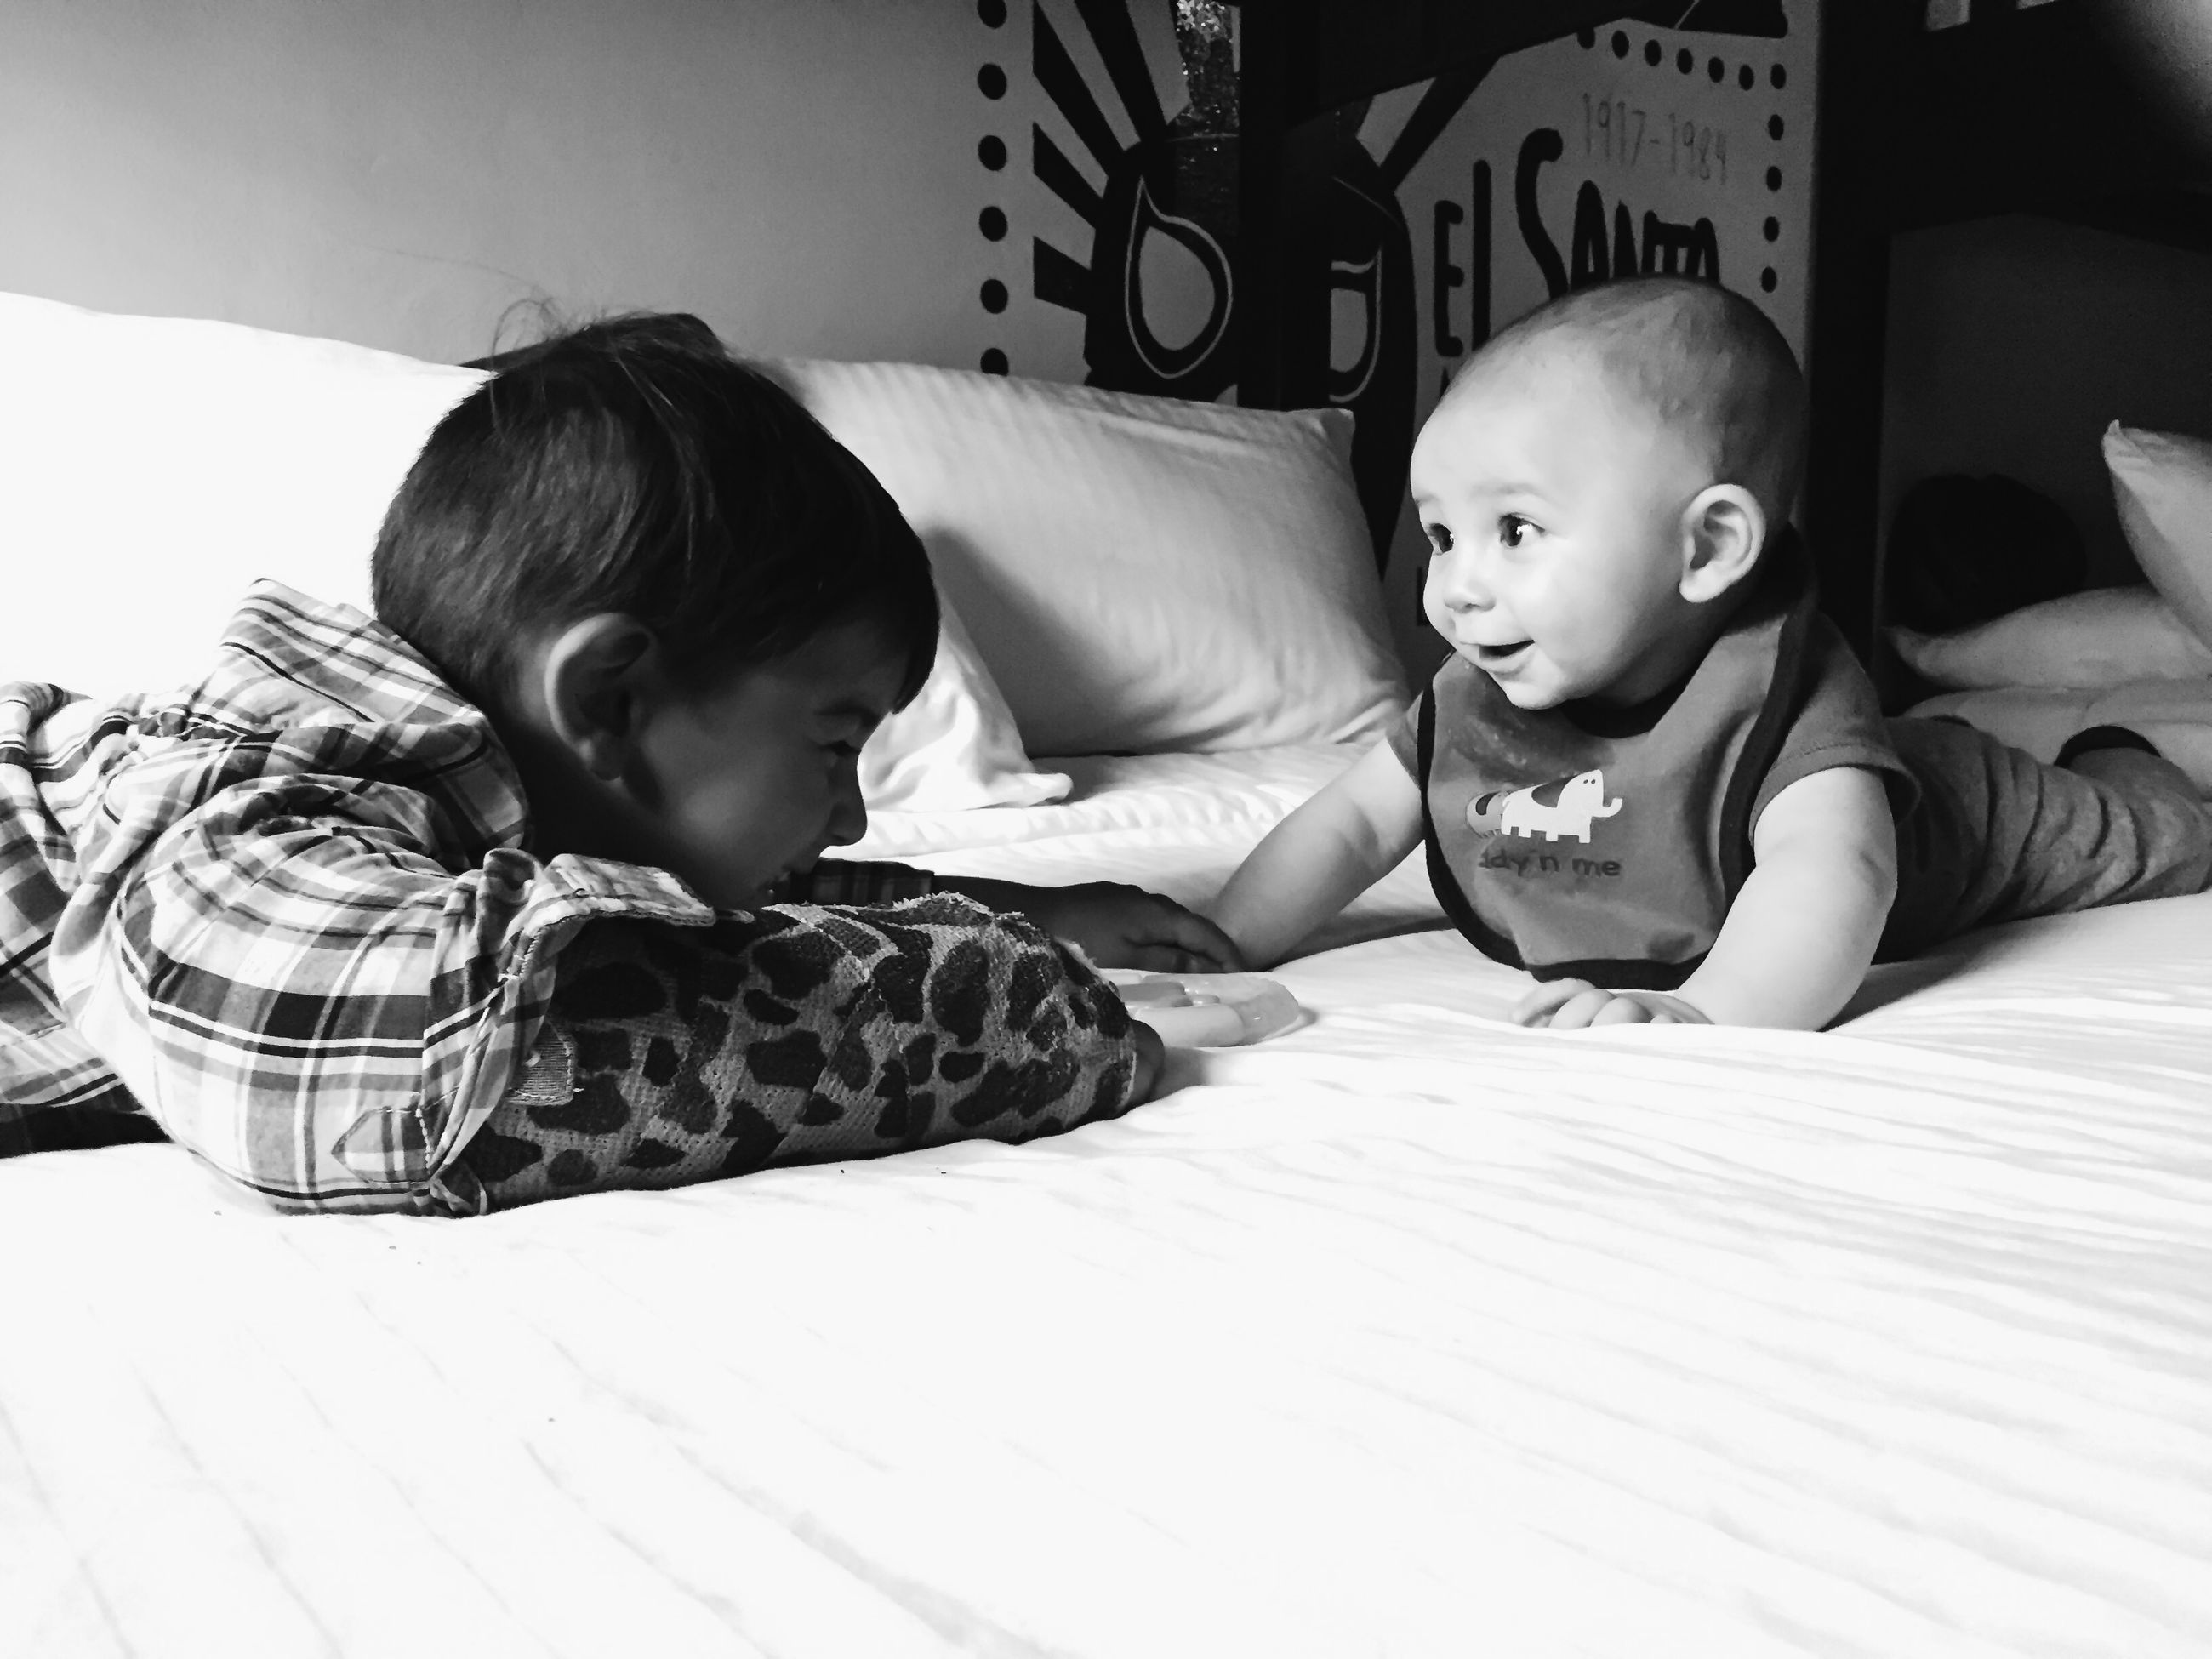 childhood, person, innocence, elementary age, boys, indoors, cute, lifestyles, leisure activity, casual clothing, togetherness, baby, relaxation, bonding, girls, toddler, babyhood